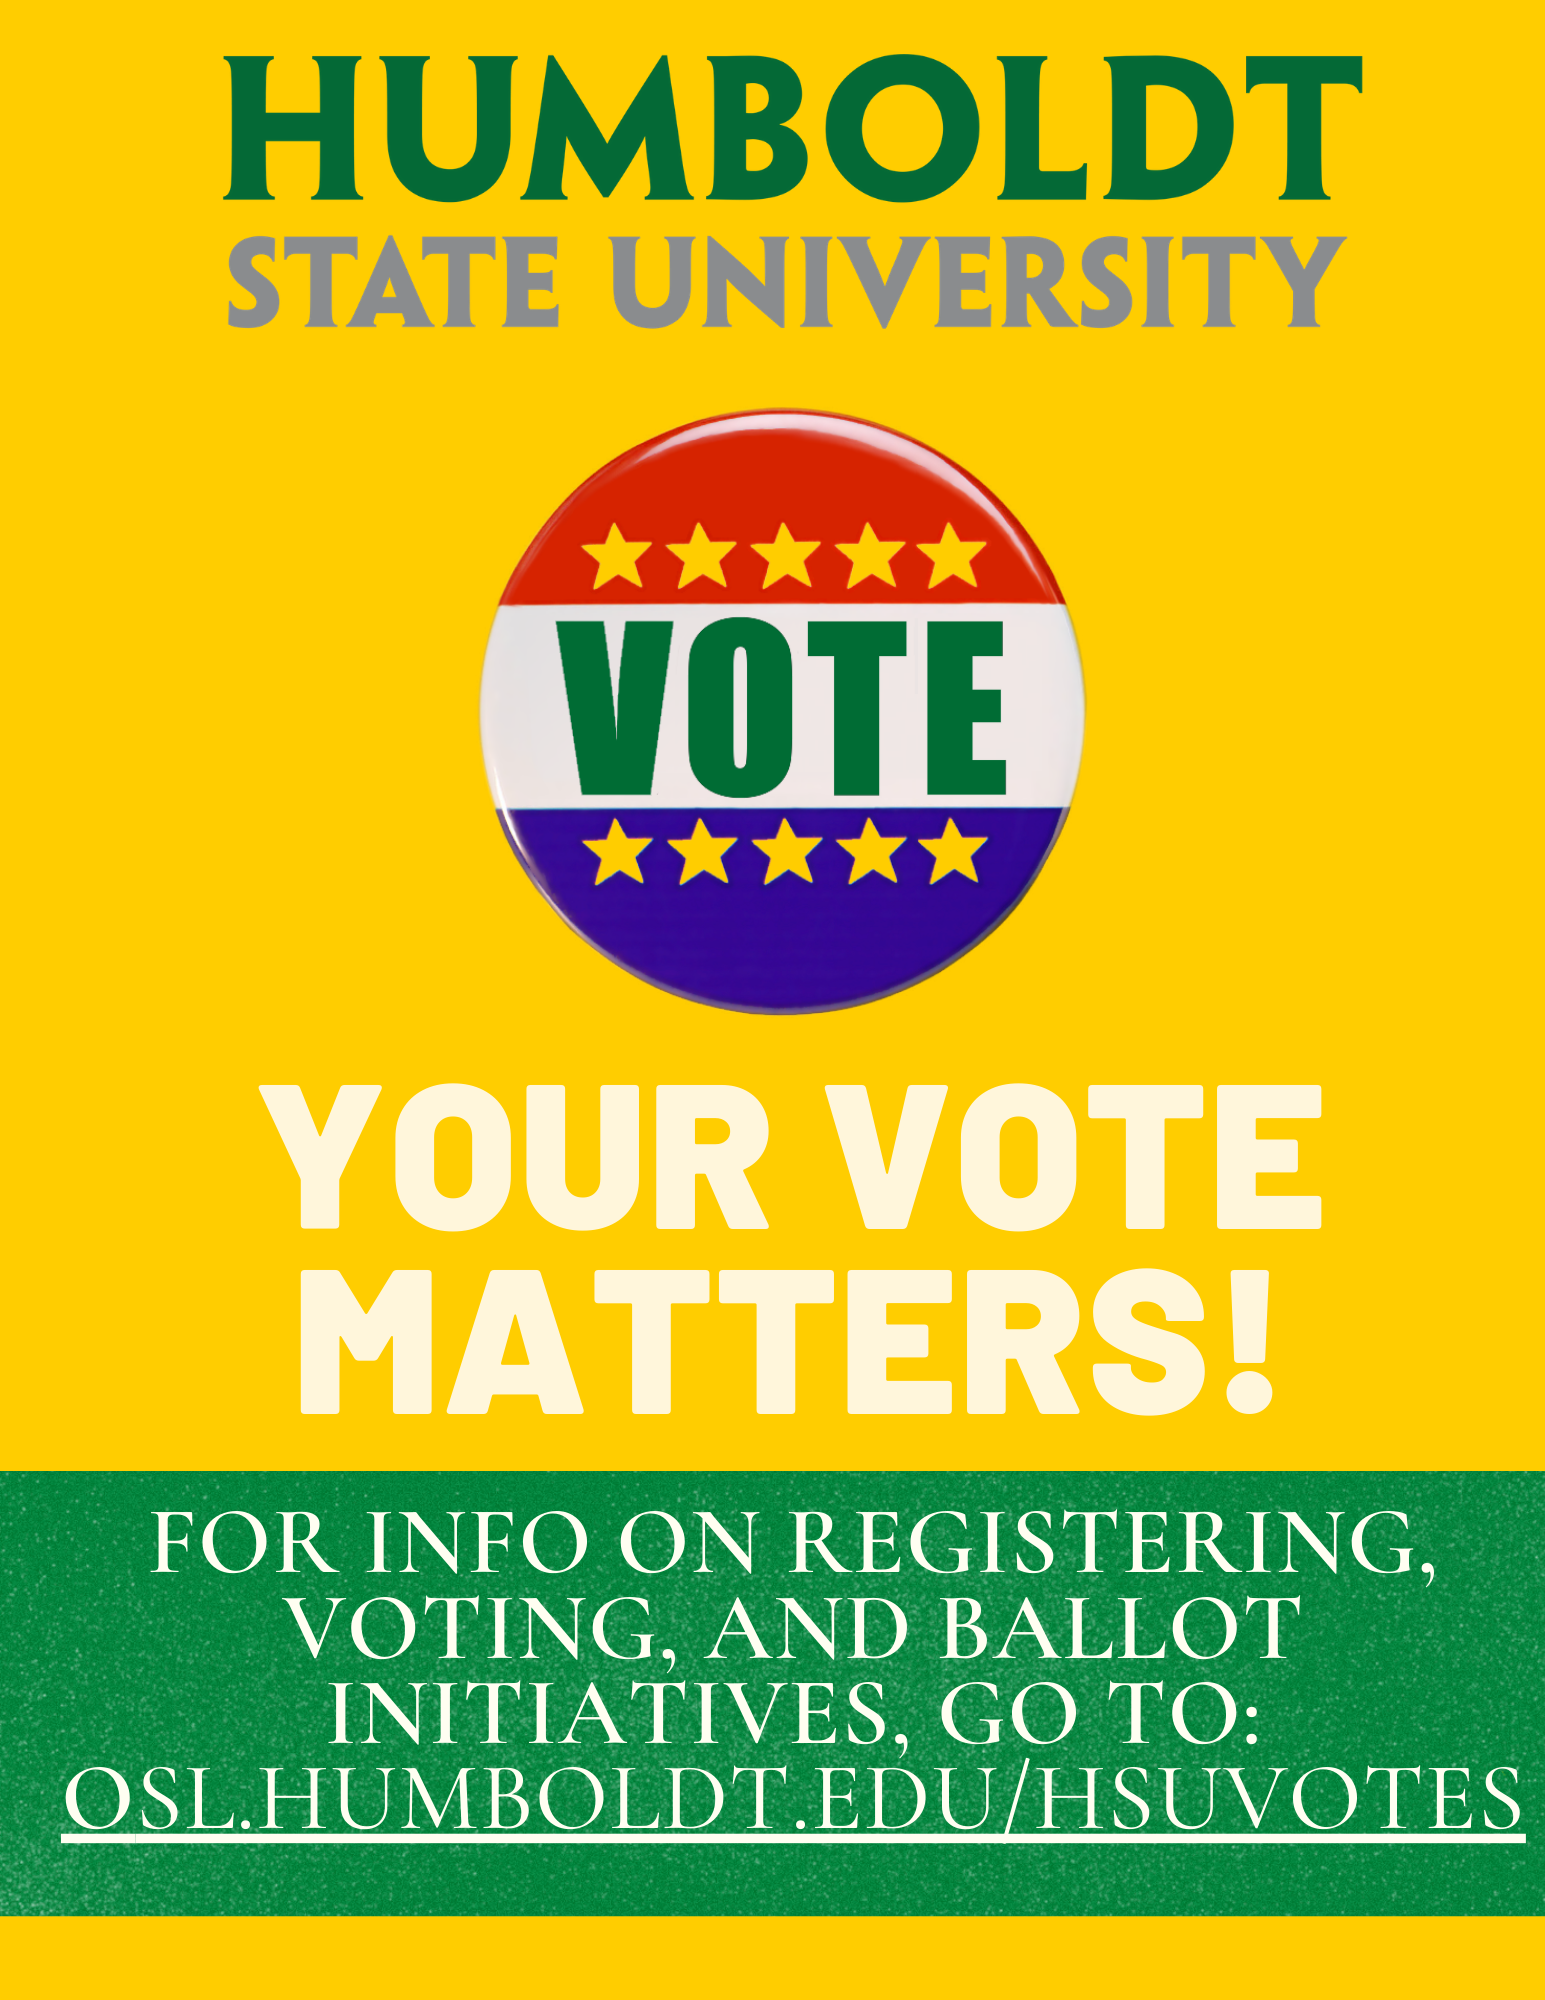 Your Vote Matters: For info on registering, voting, and Ballot Initiatives, go to: OSL.humboldt.edu/HSUVotes